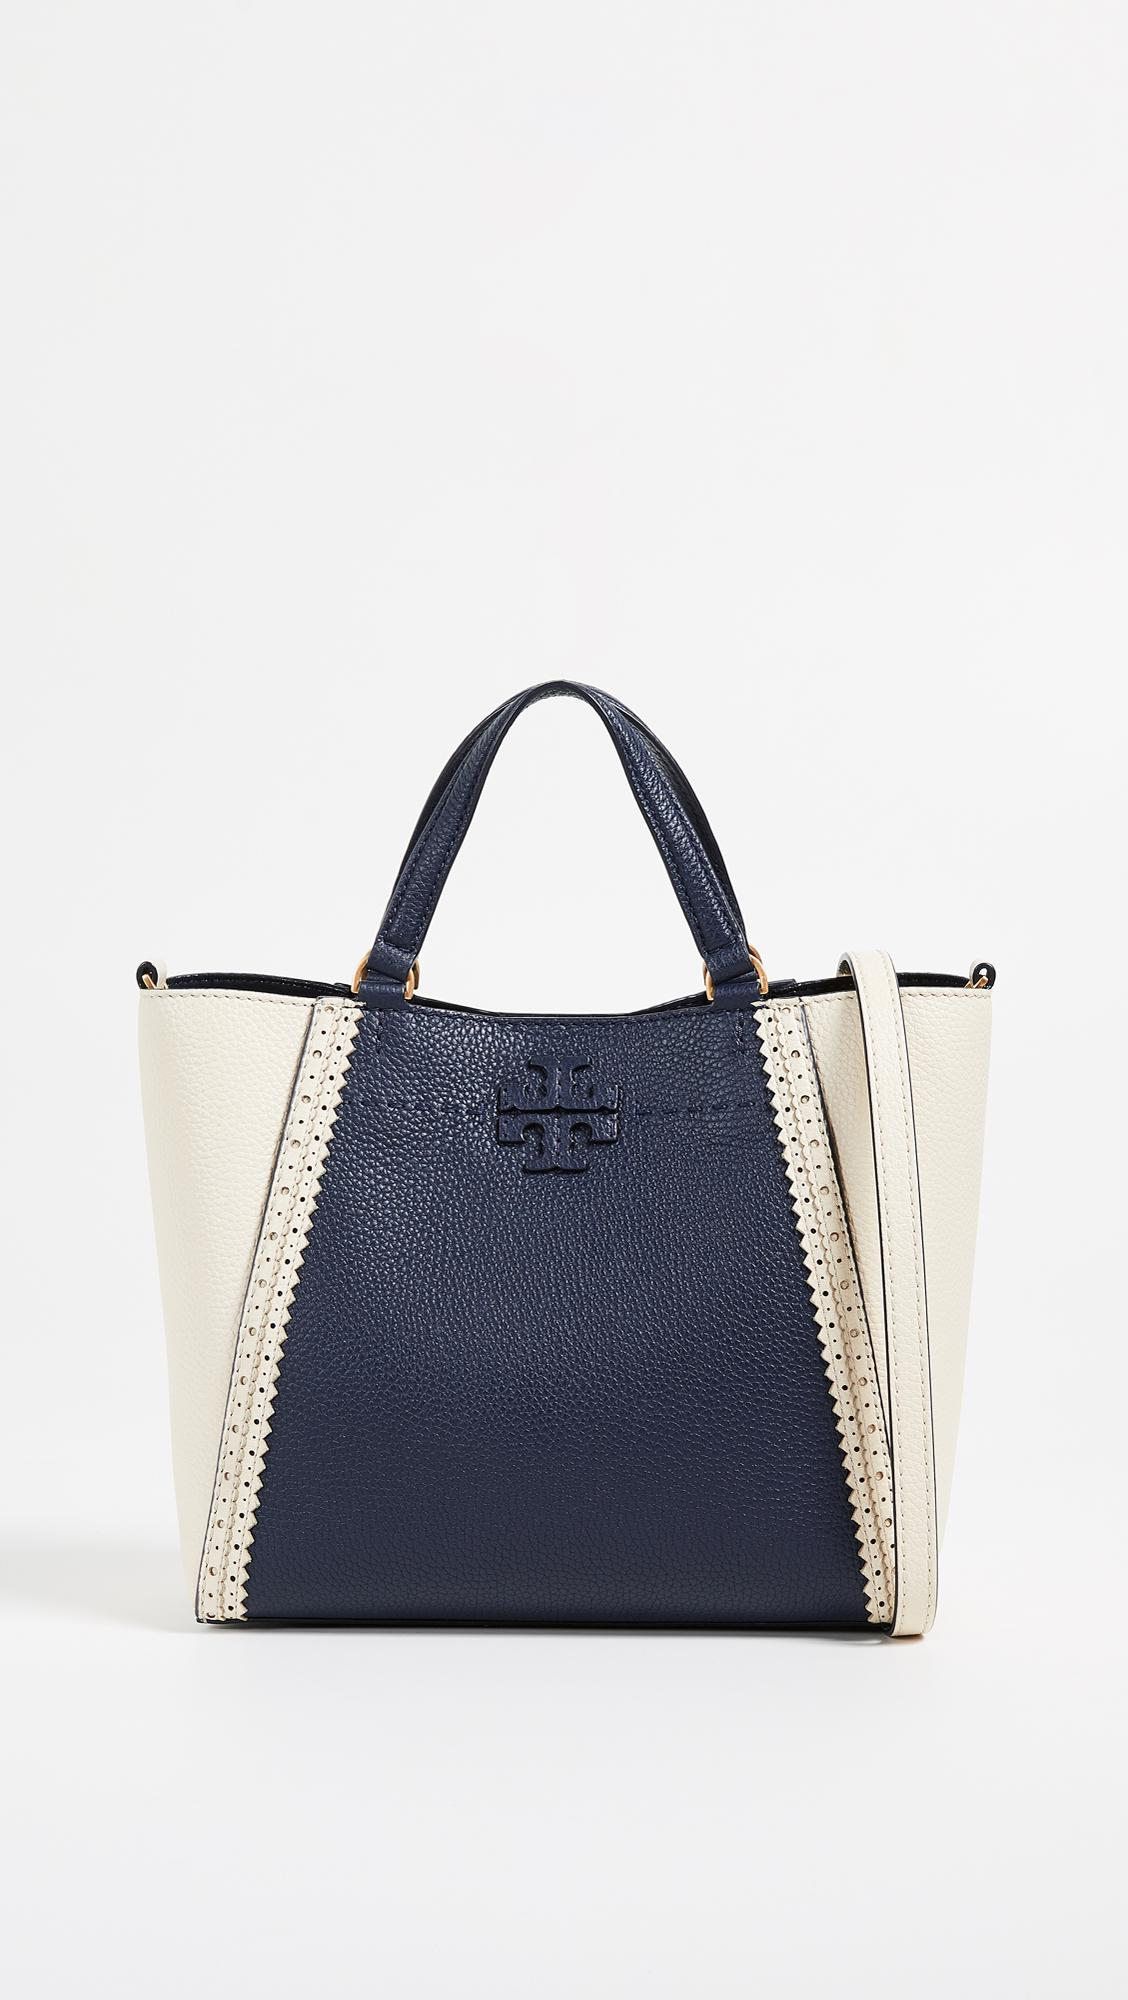 40c031f6952b0 Lyst - Tory Burch Mcgraw Brogue Small Caryall Tote in Blue